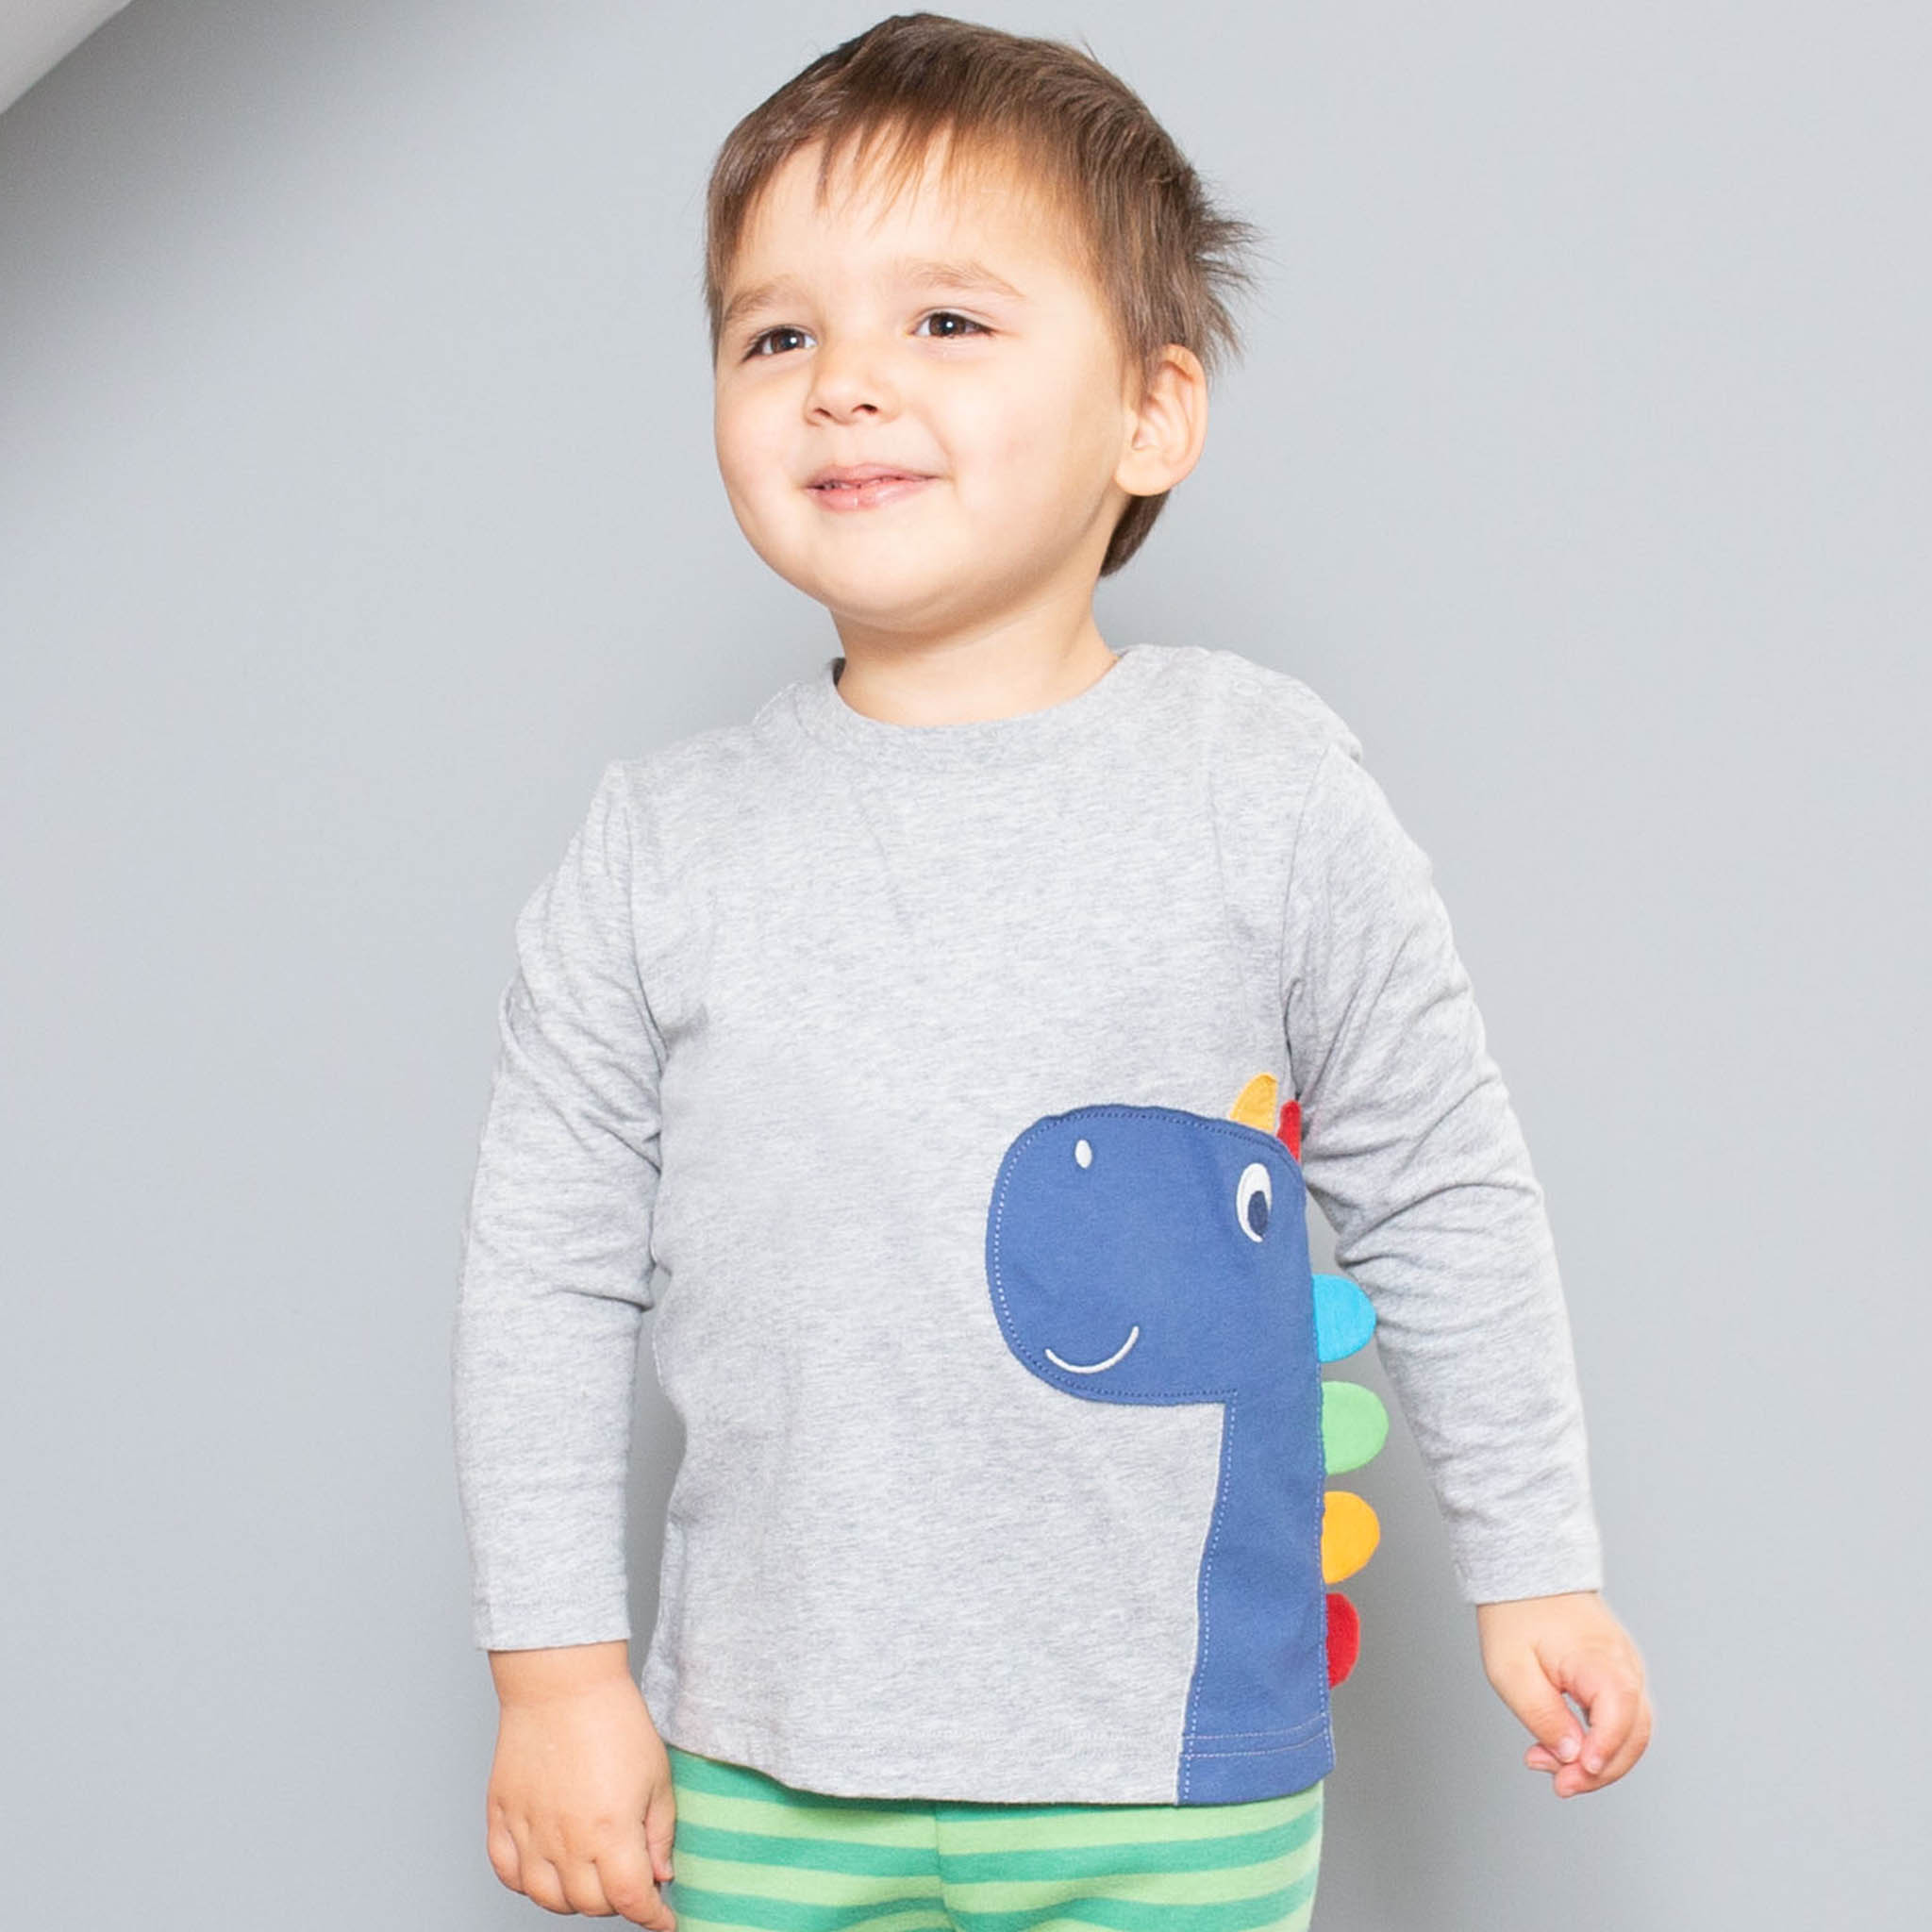 SALE £17.60 Kite Spine-osaurus Top (was £22.00)